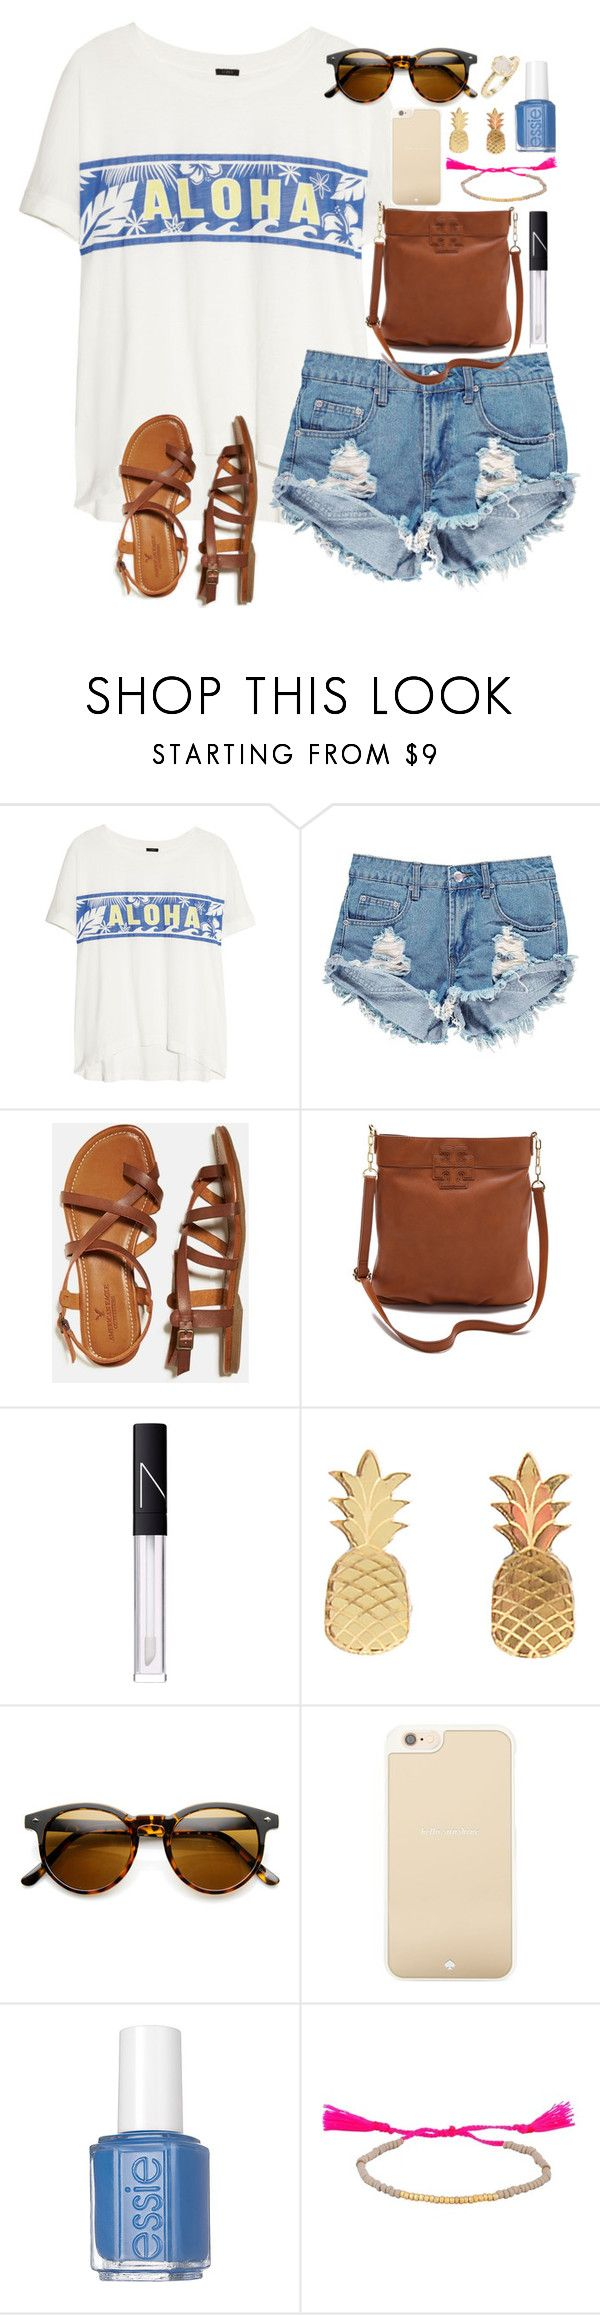 """""""Aloha"""" by lauren-hailey ❤ liked on Polyvore featuring J.Crew, Boohoo, American Eagle Outfitters, Tory Burch, NARS Cosmetics, Vinca, Kate Spade, Essie and Kendra Scott"""